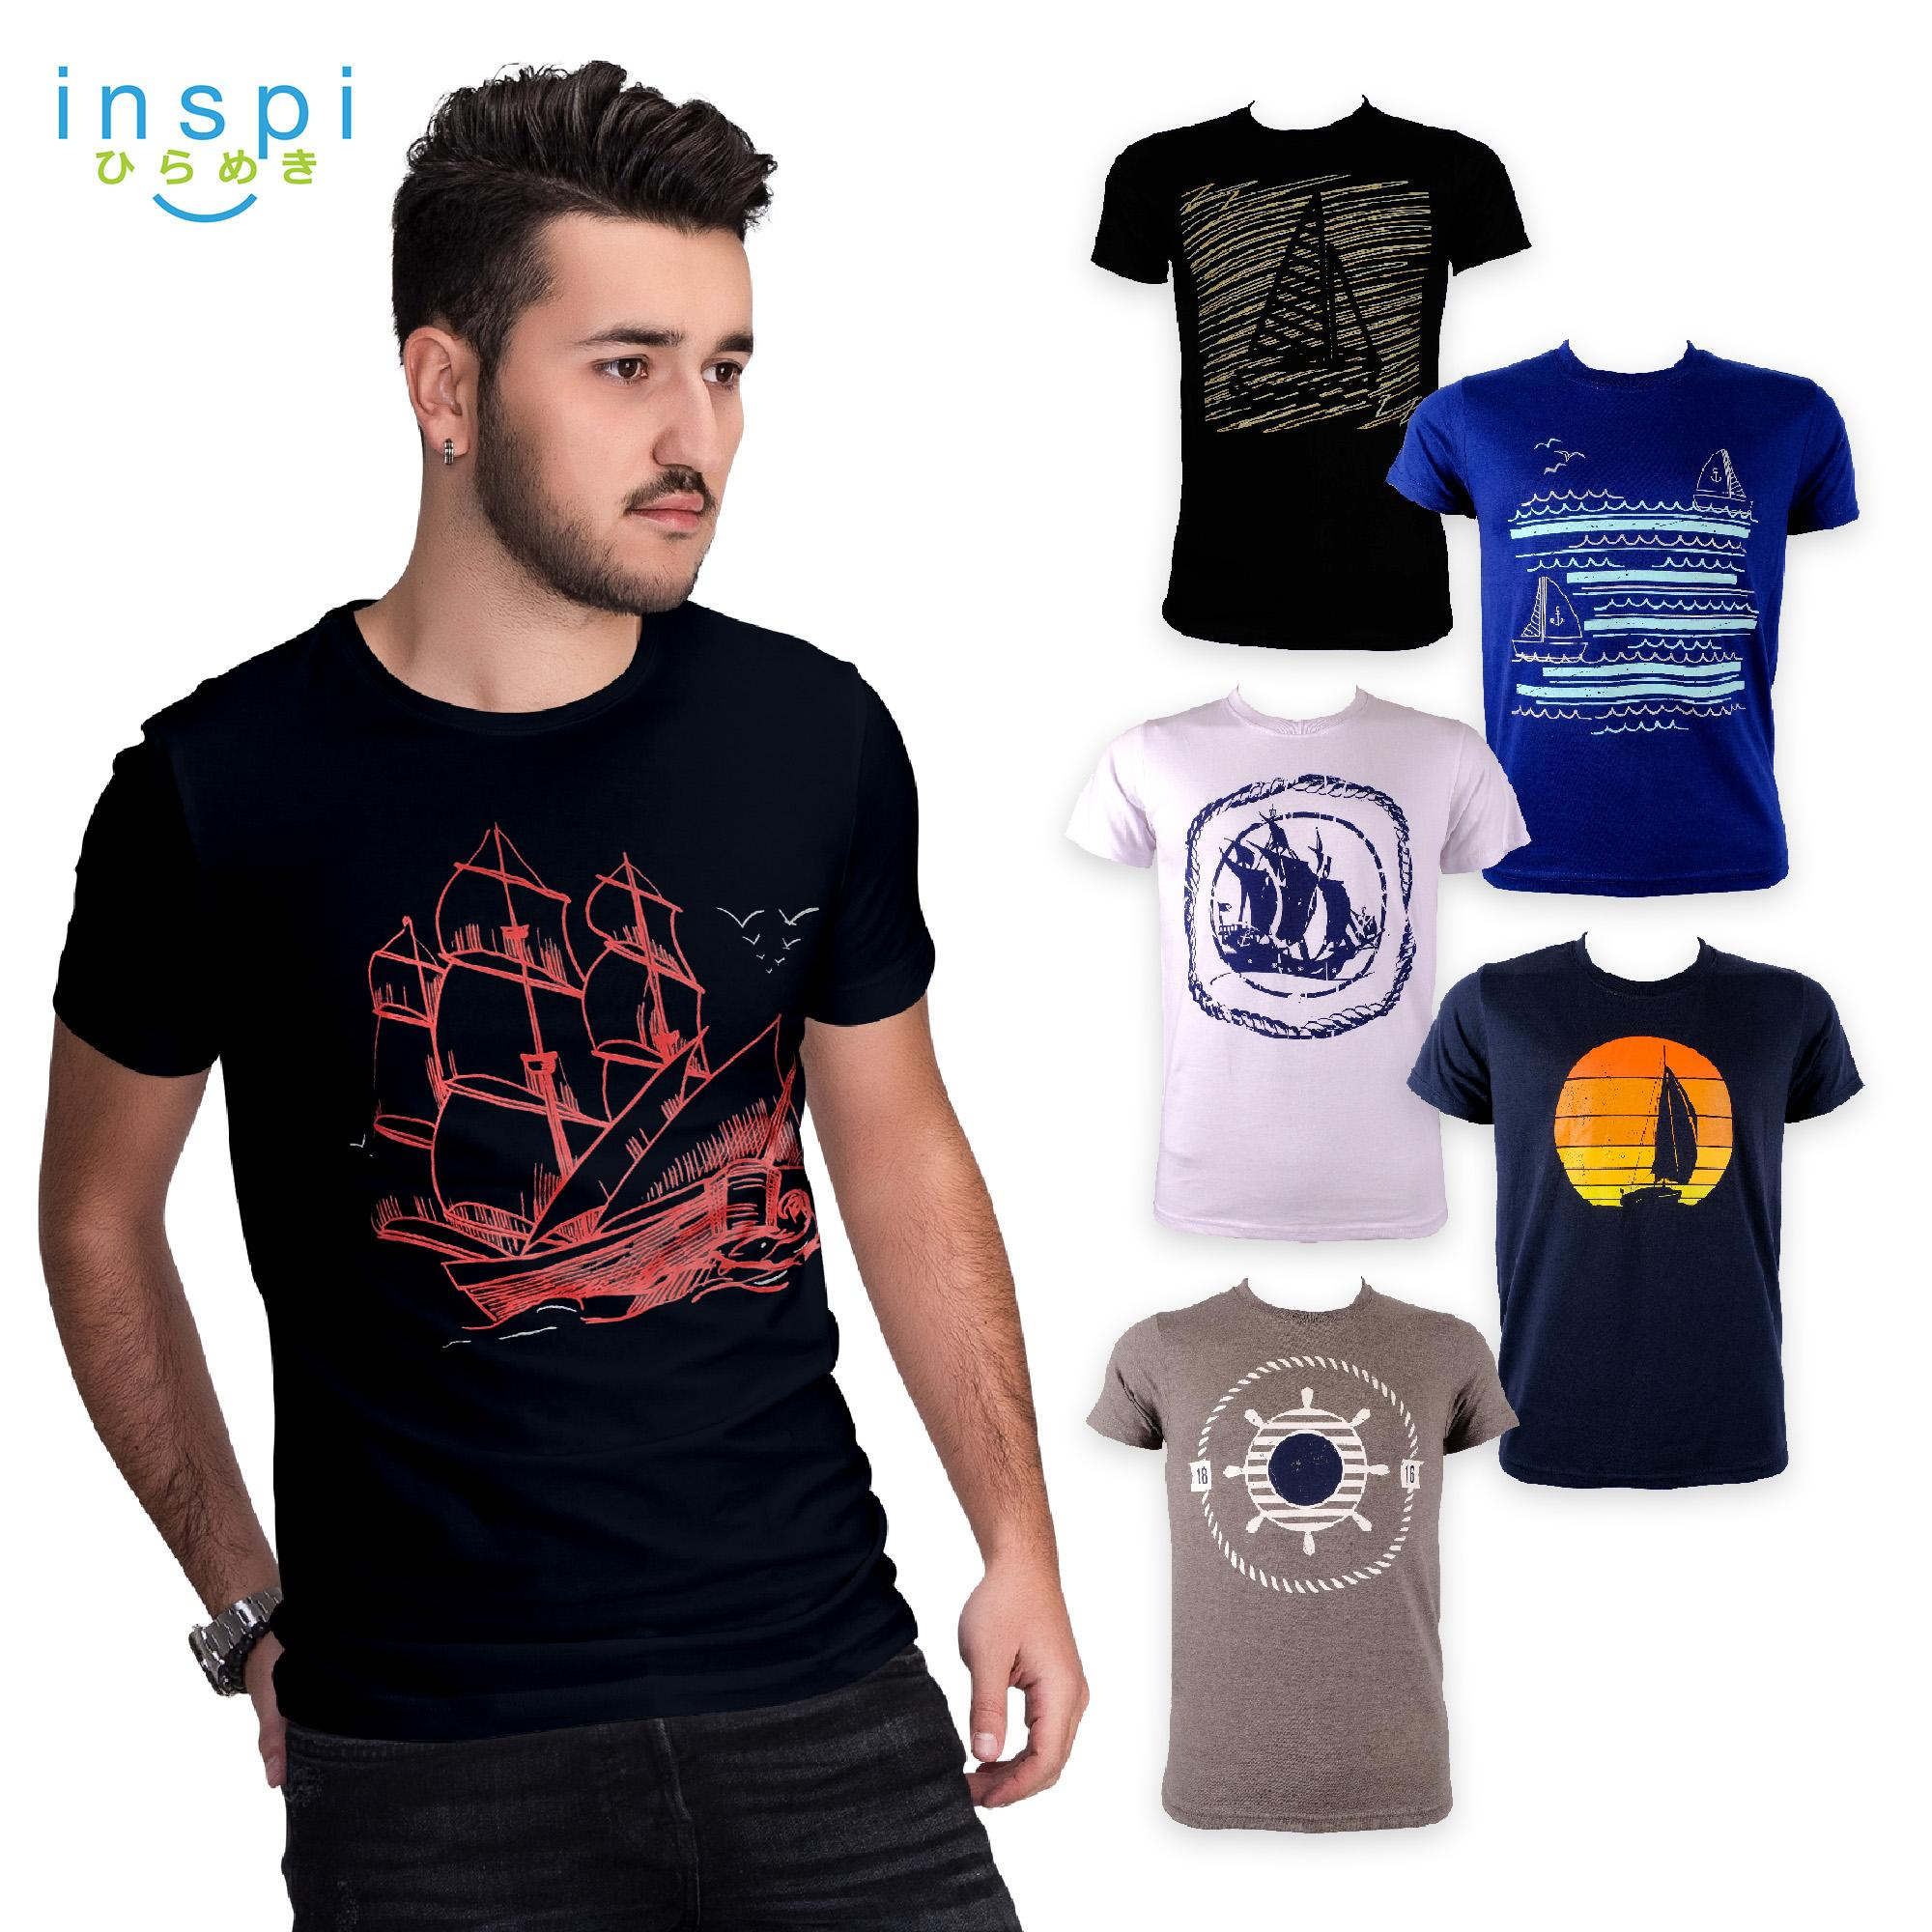 65460be0b INSPI Tees Sailing Collection tshirt printed graphic tee Mens t shirt  shirts for men tshirts sale